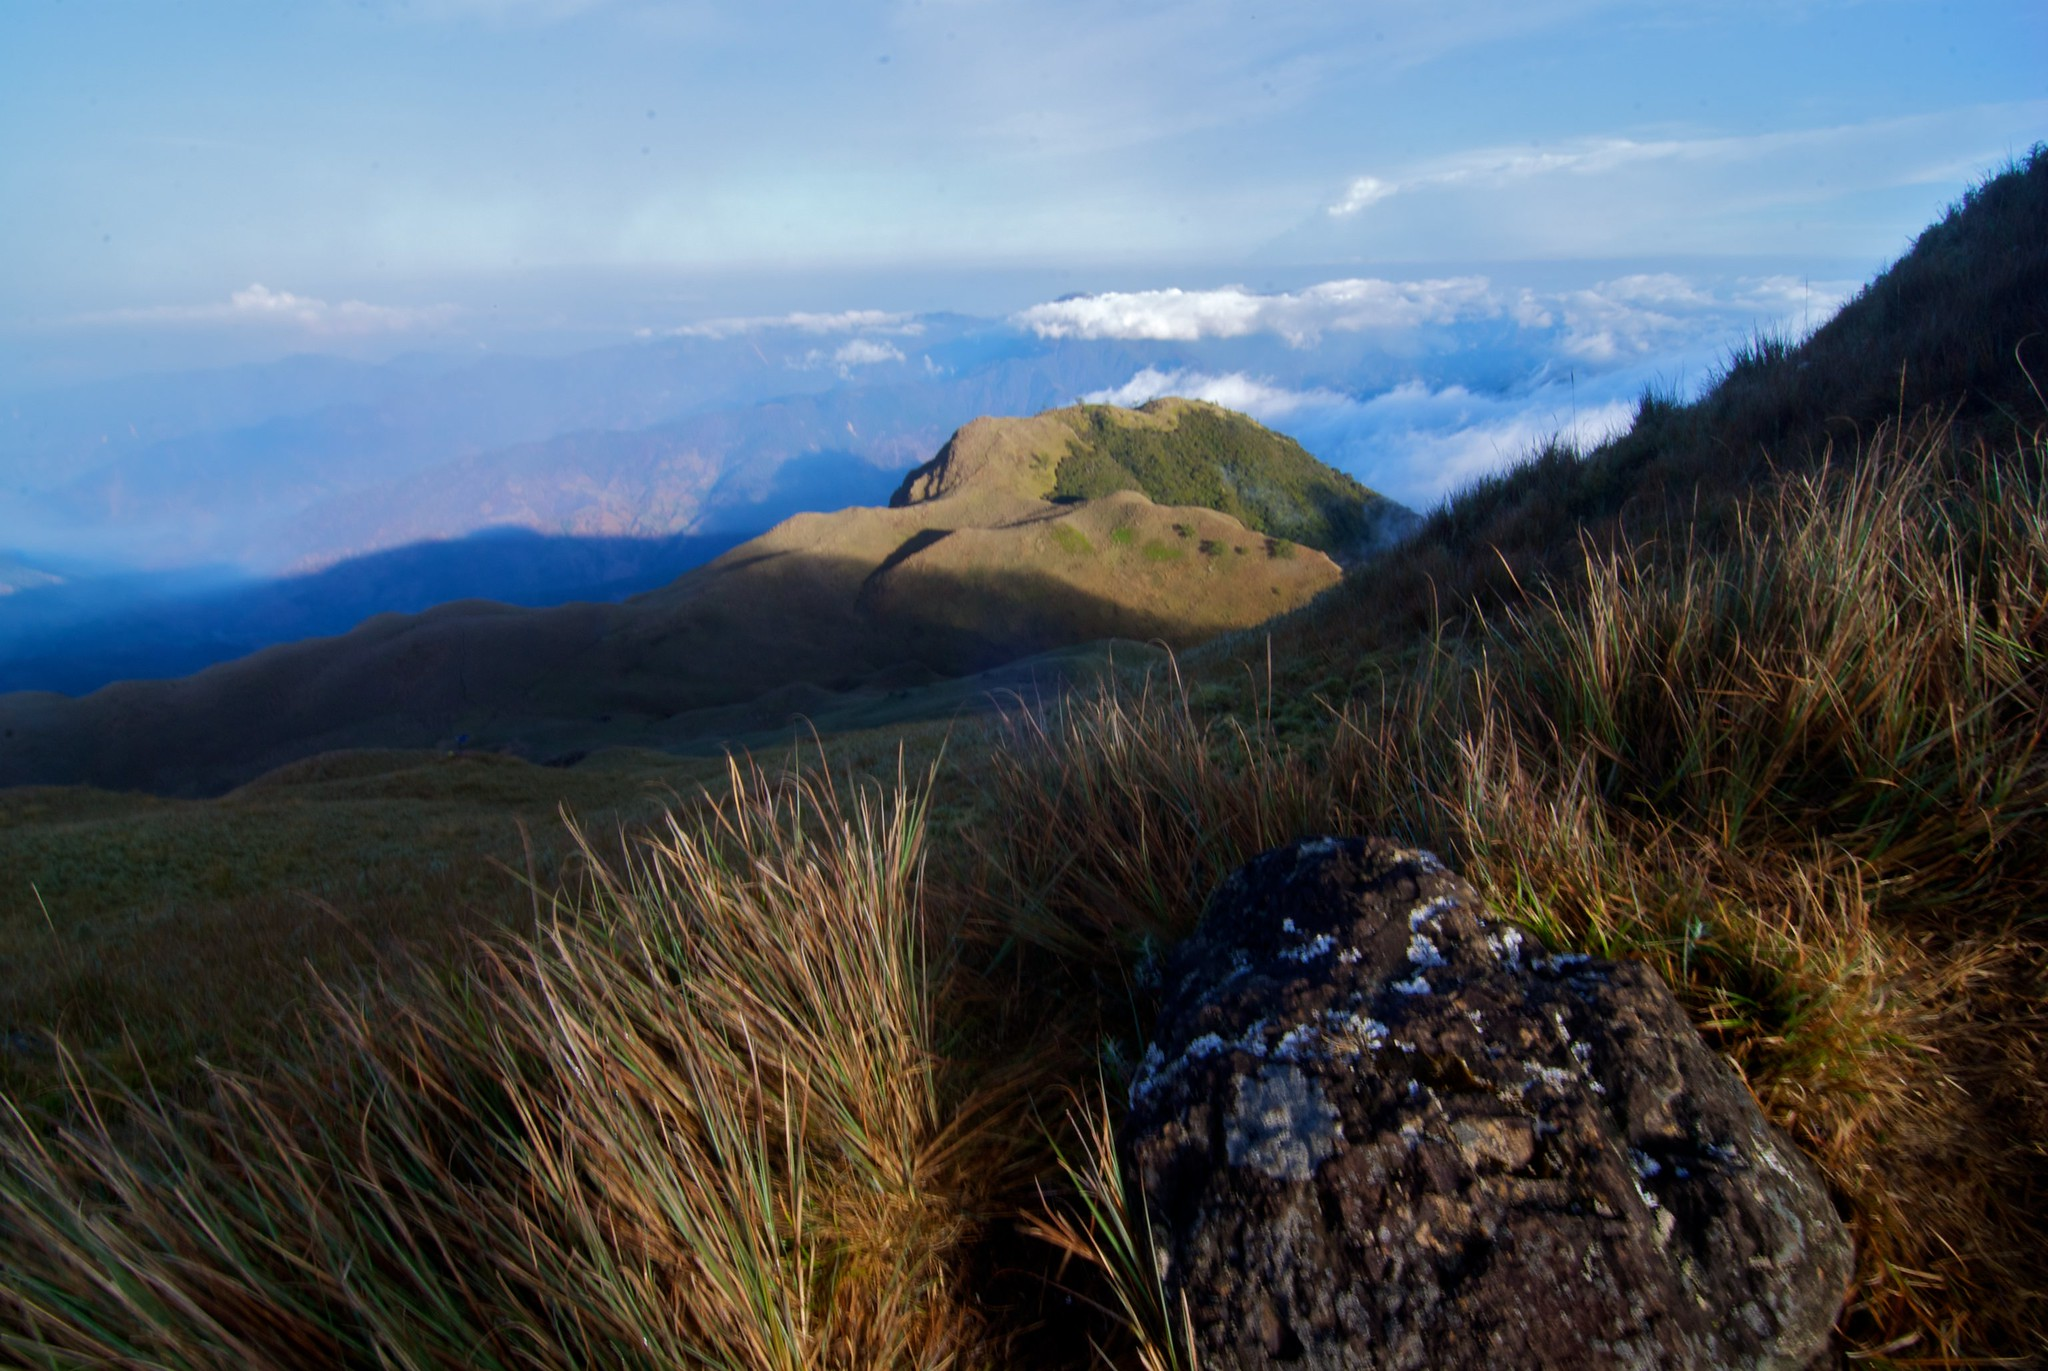 Travel Guide to Mt. Pulag, Philippines DIY Itinerary